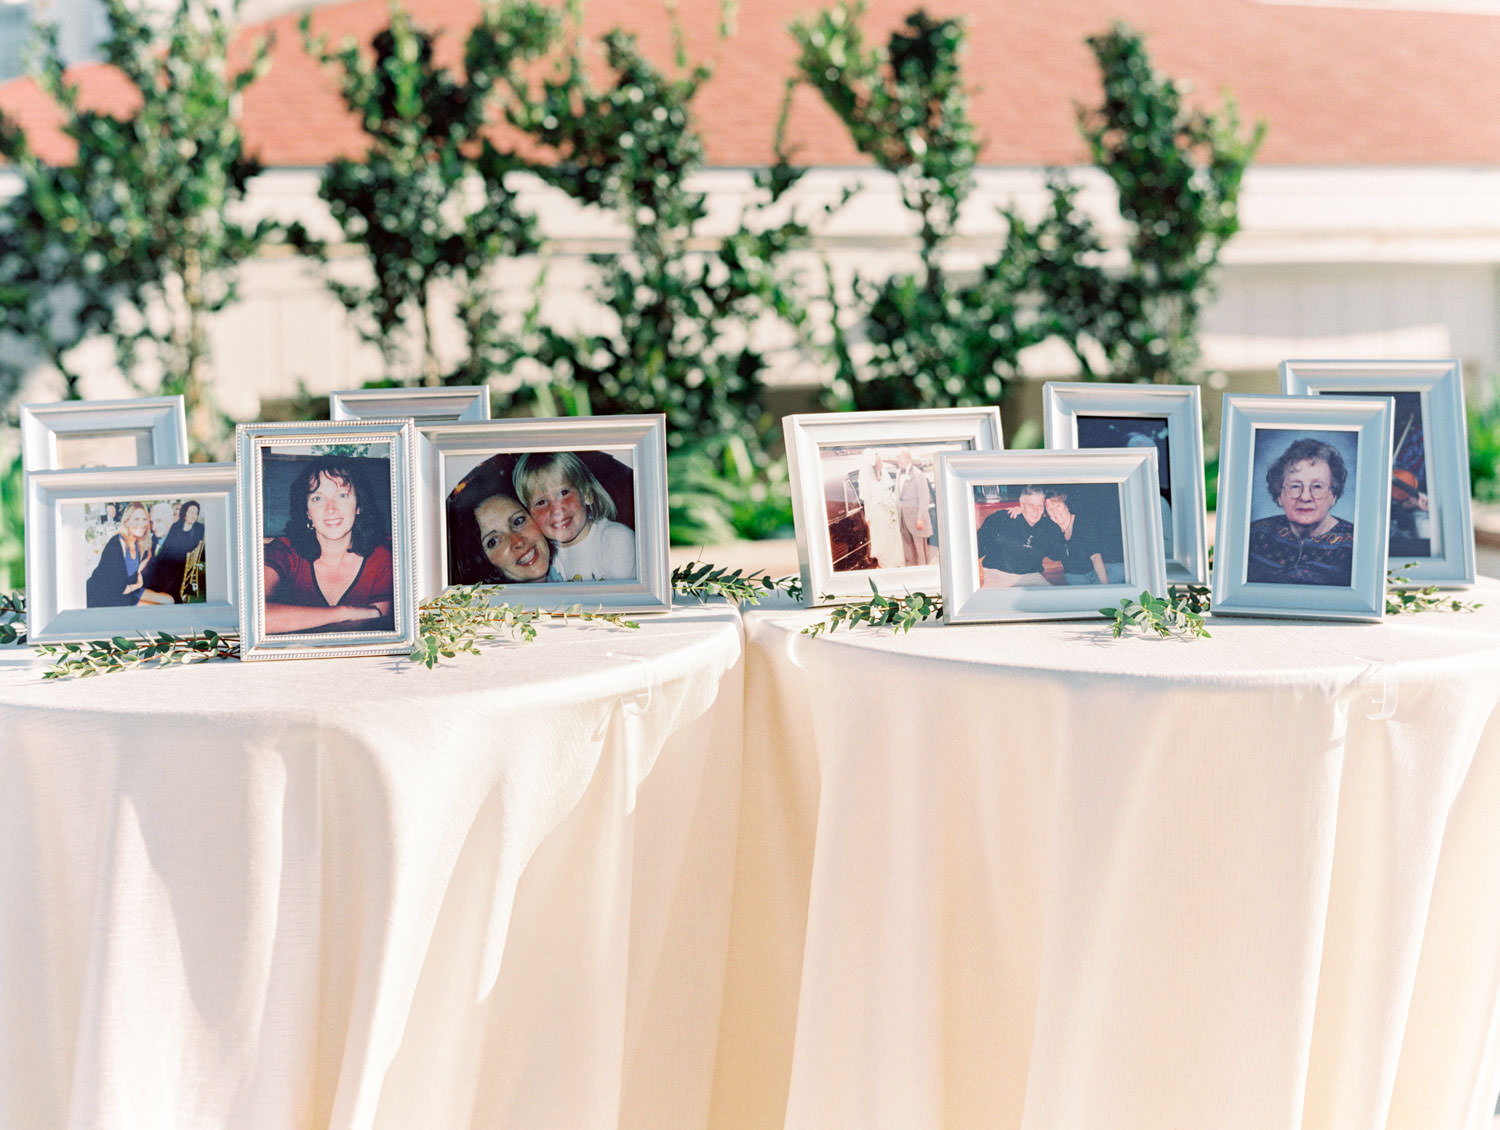 Wedding memorial table with photos of deceased loved ones.